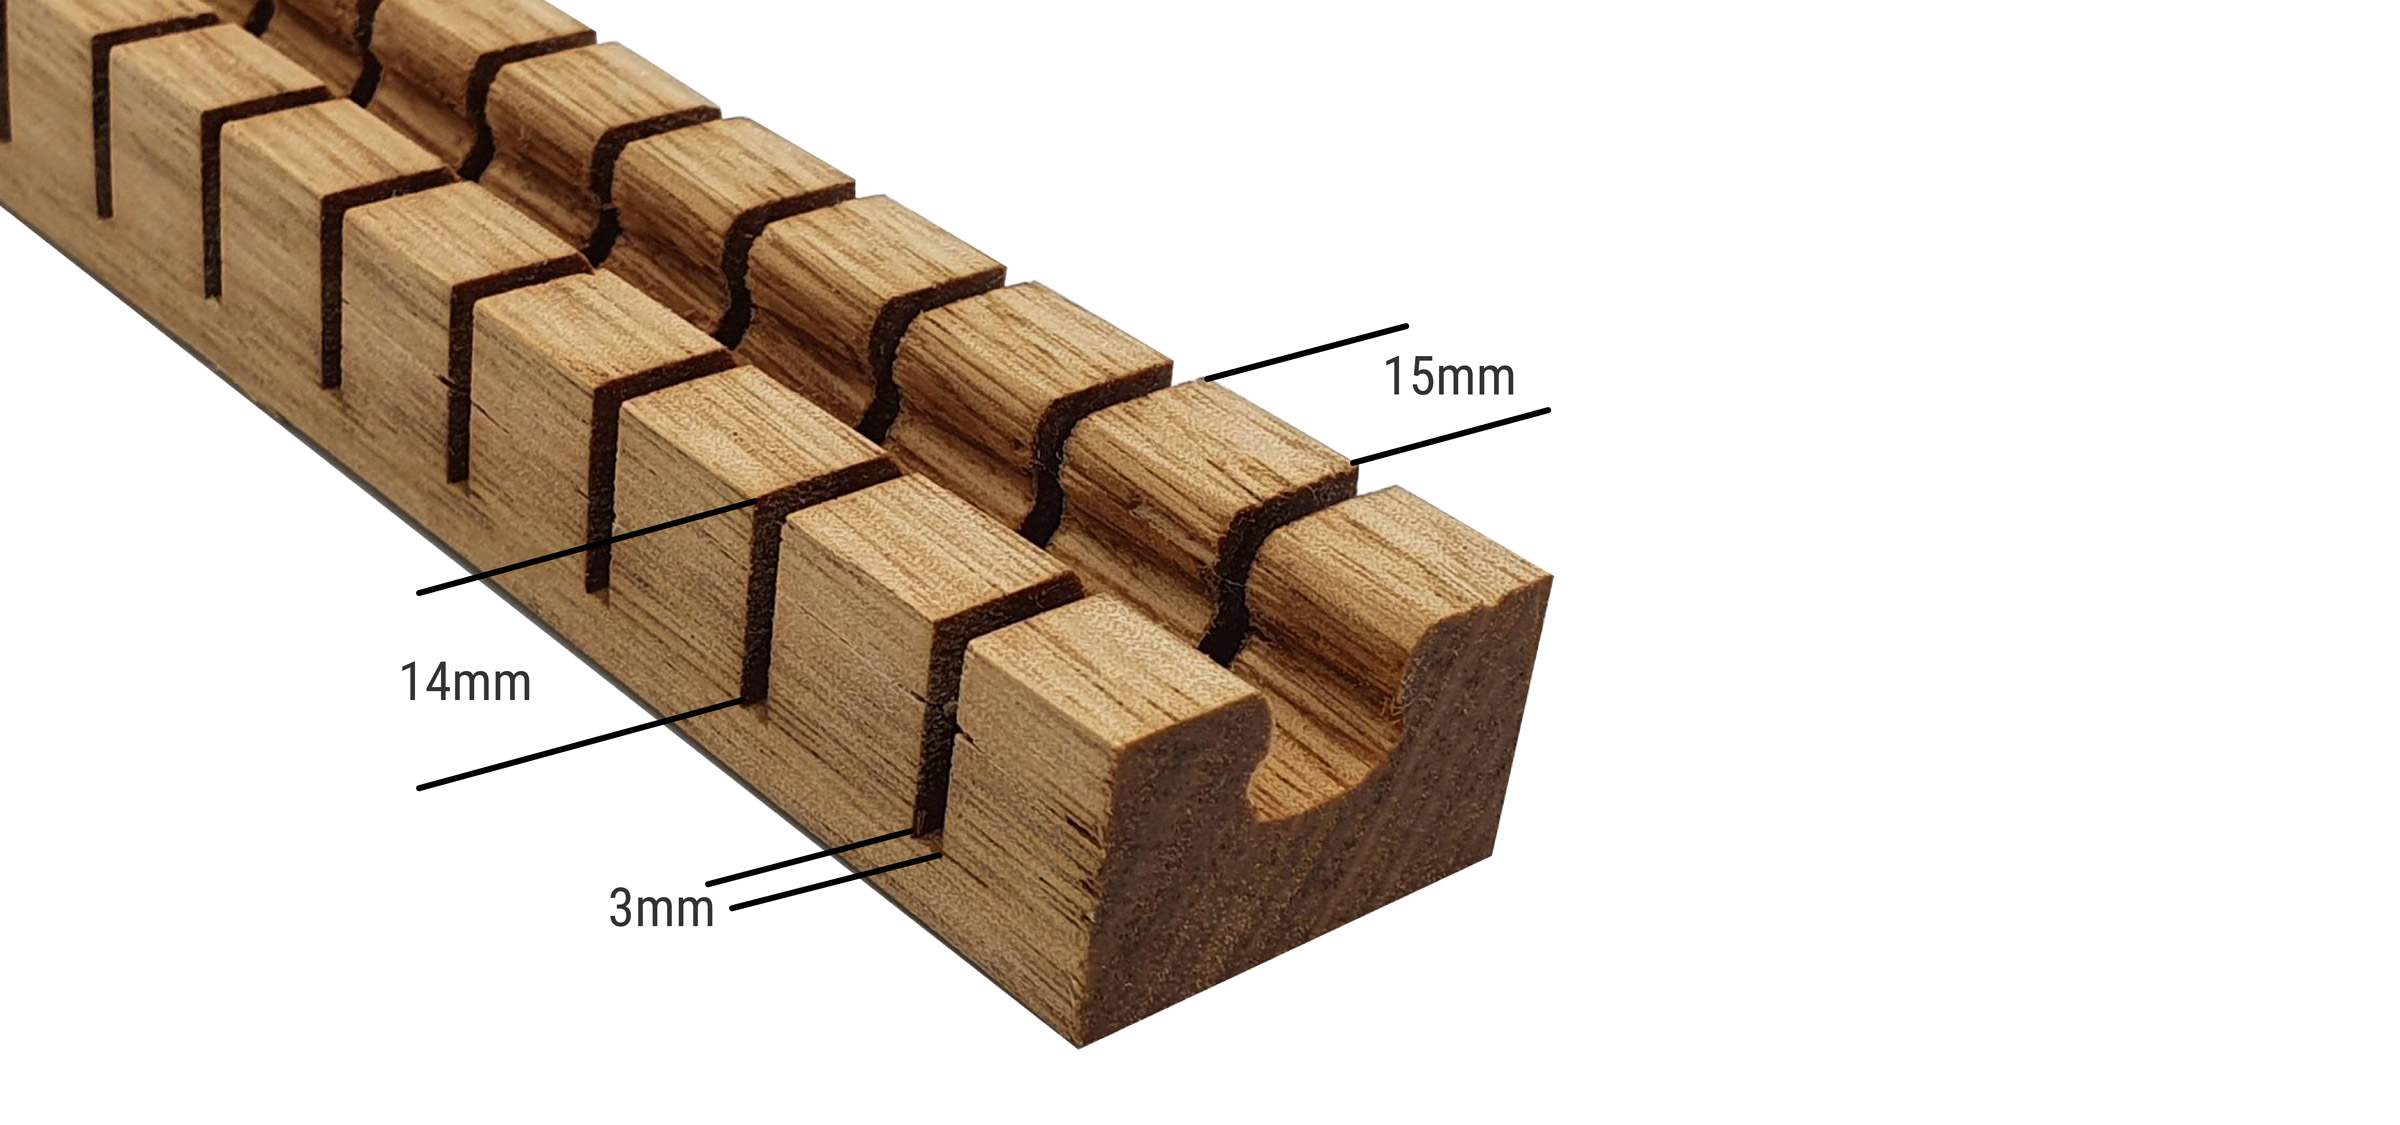 Kerfed timber specifications